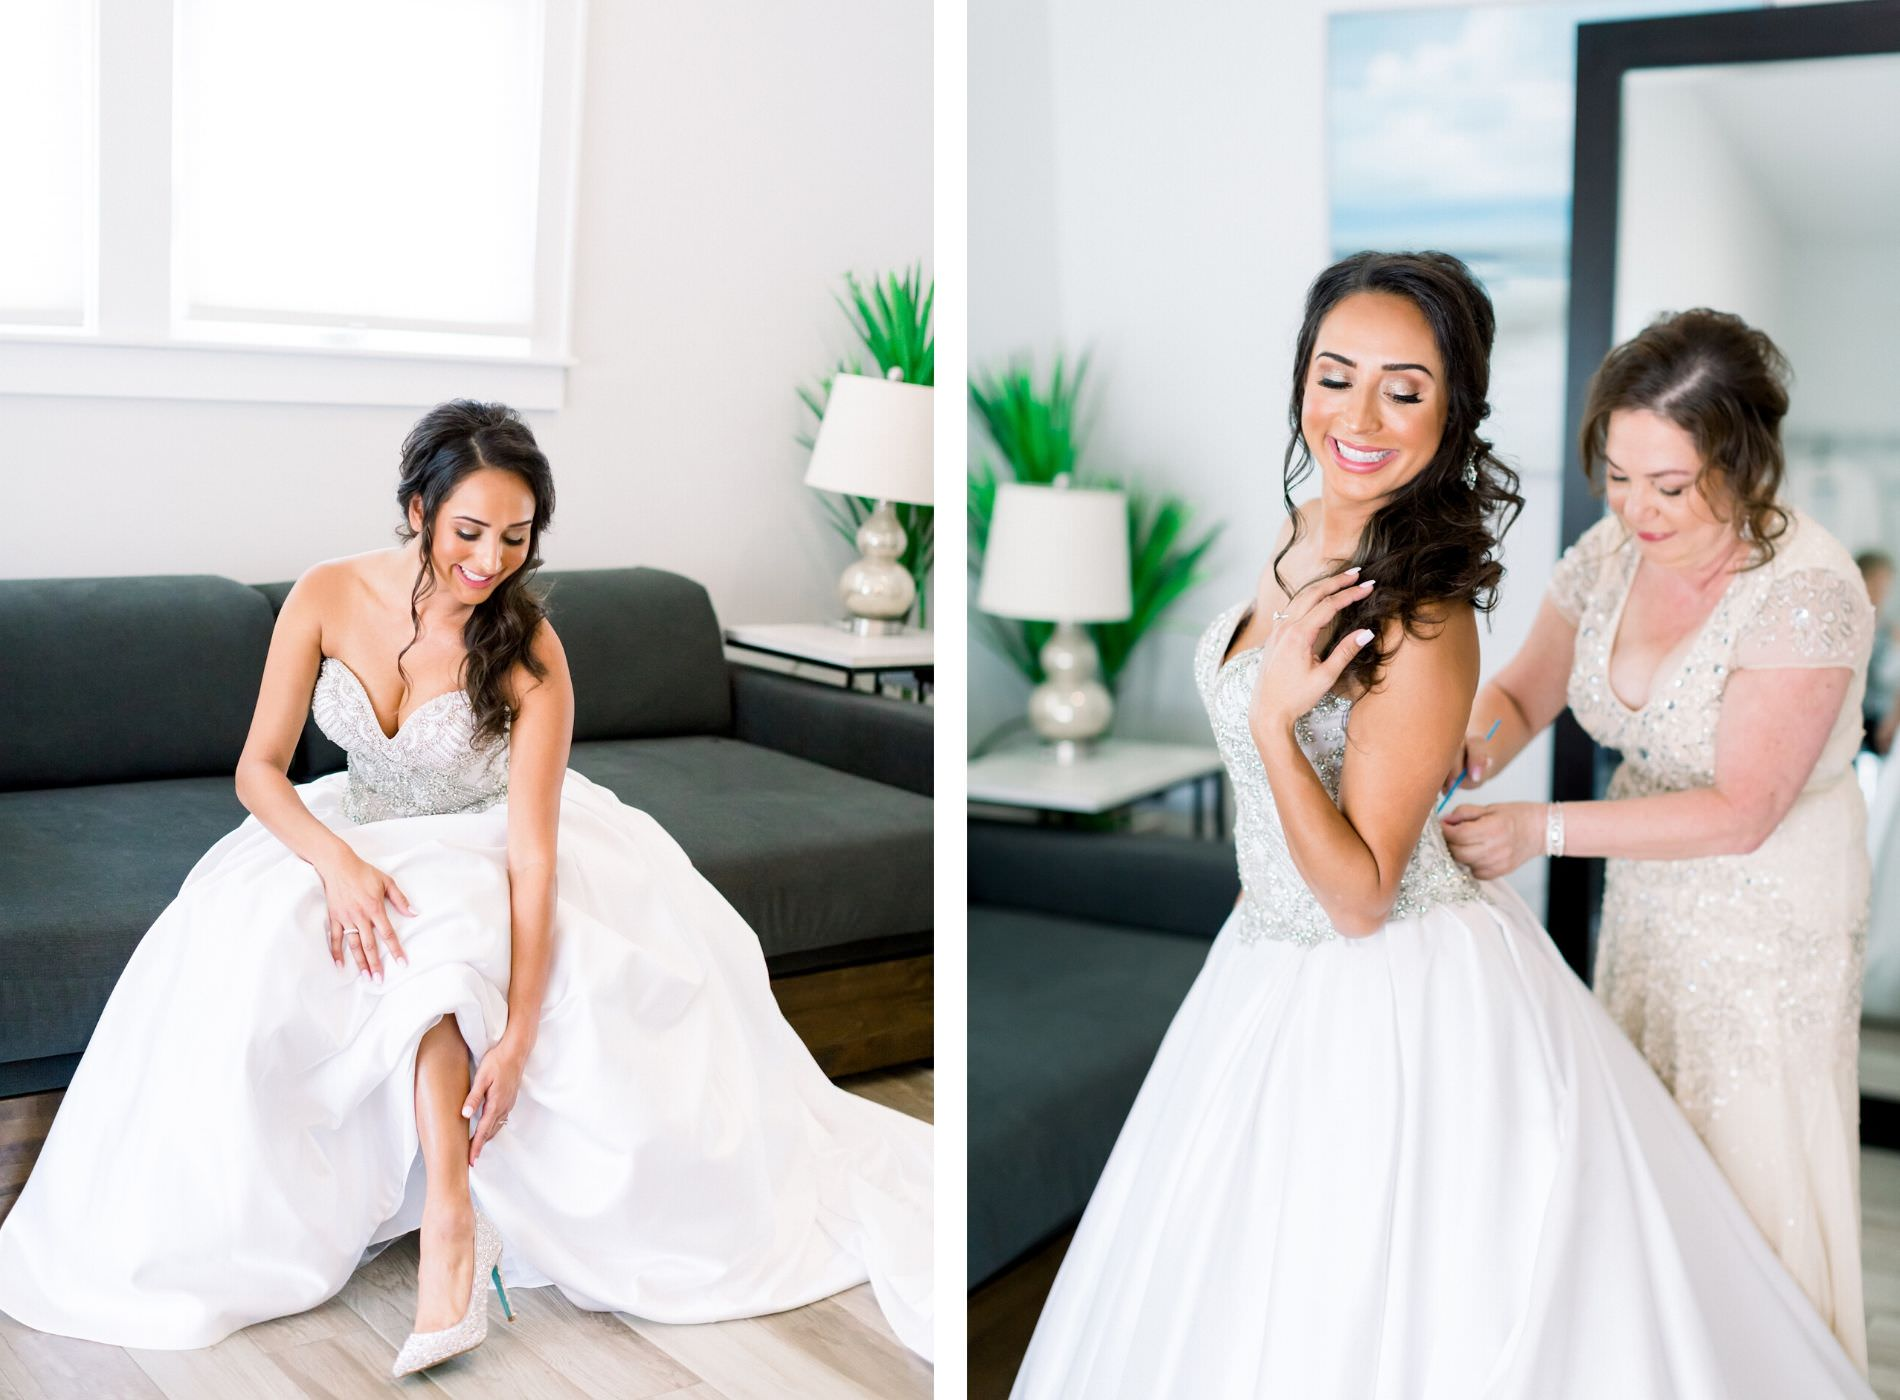 Florida Bride Getting Ready with Mom in Strapless Sweetheart Rhinestone Bodice and Ballgown Skirt Wedding Dress | Tampa Bay Wedding Photographer Shauna and Jordon Photography | Wedding Dress Truly Forever Bridal